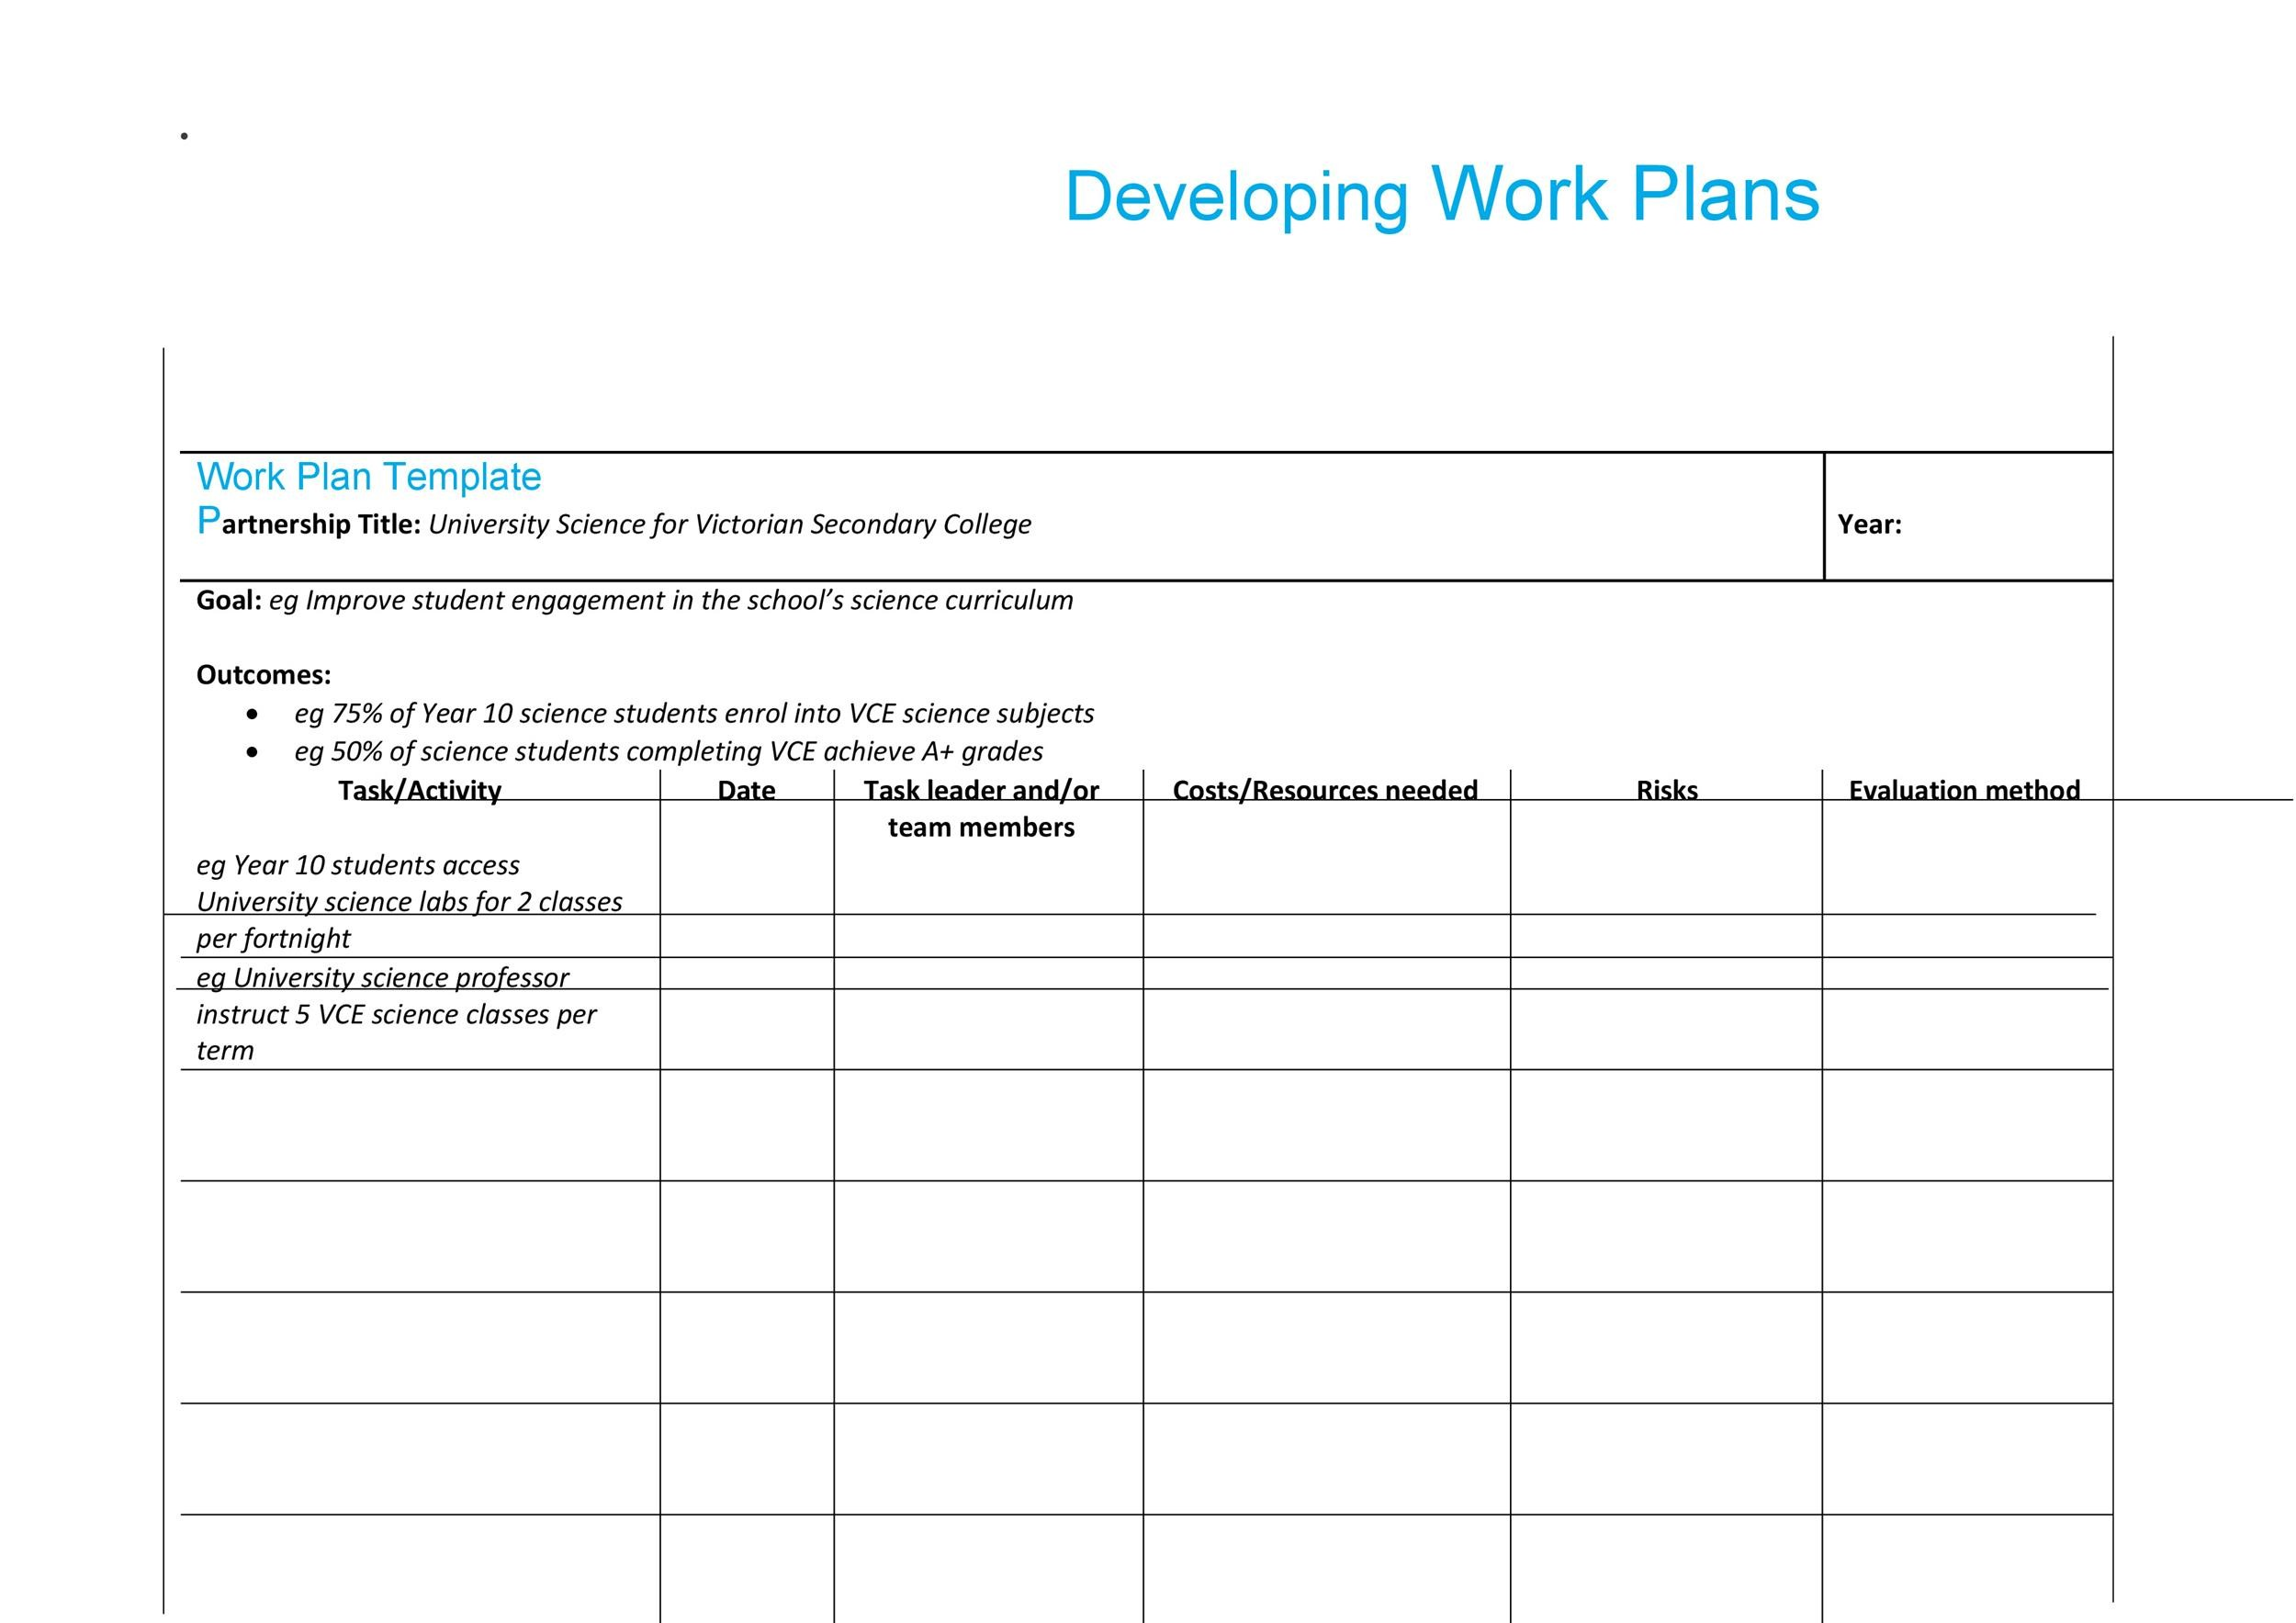 Work Plan   40 Great Templates & Samples (Excel / Word)   Template Lab